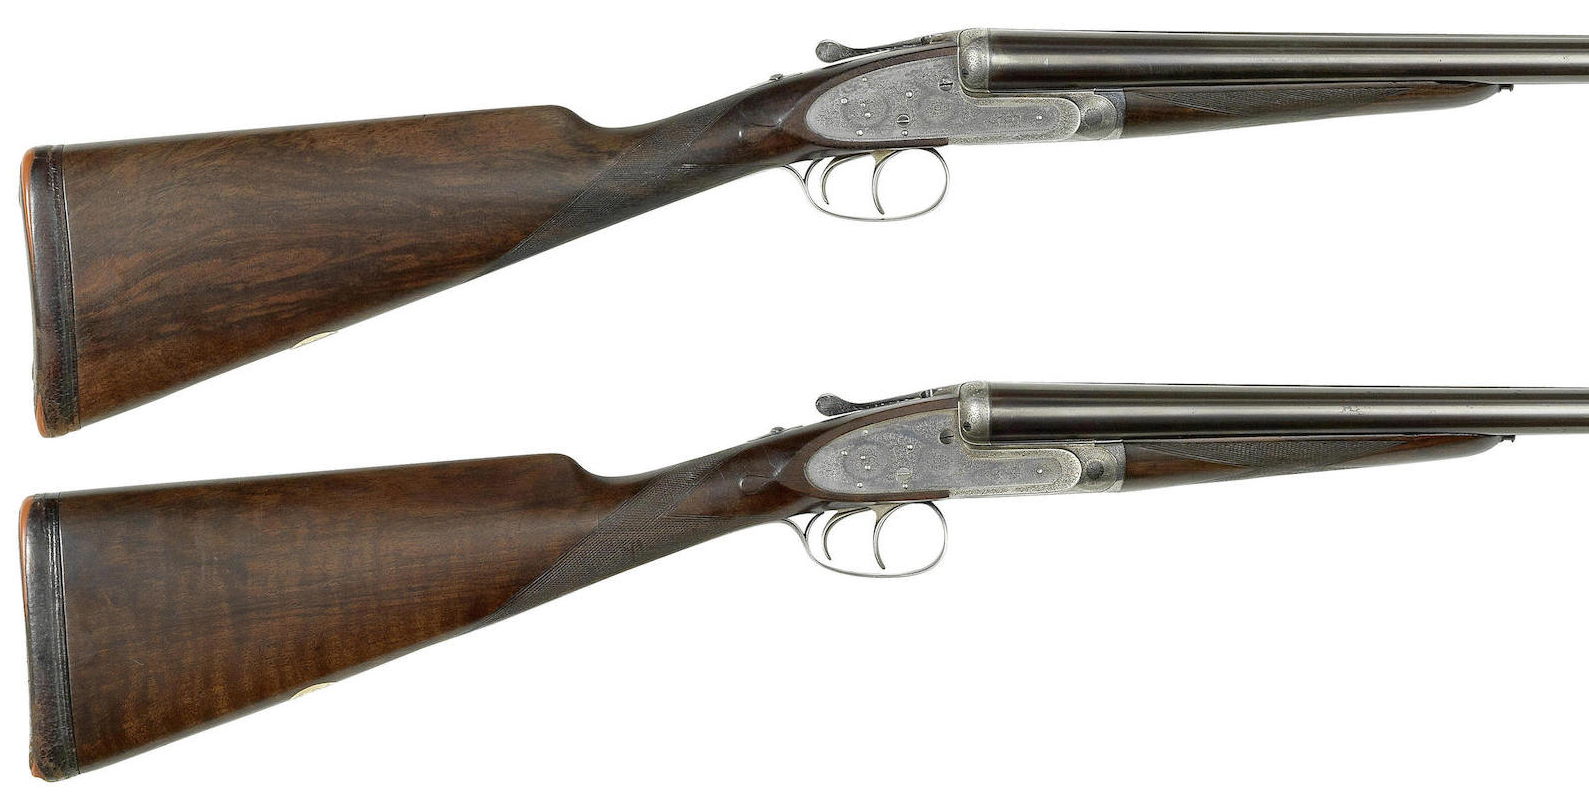 A fine pair of 12-bore self-opening sidelock ejector guns by J. Purdey & Sons, no. 25584-5a